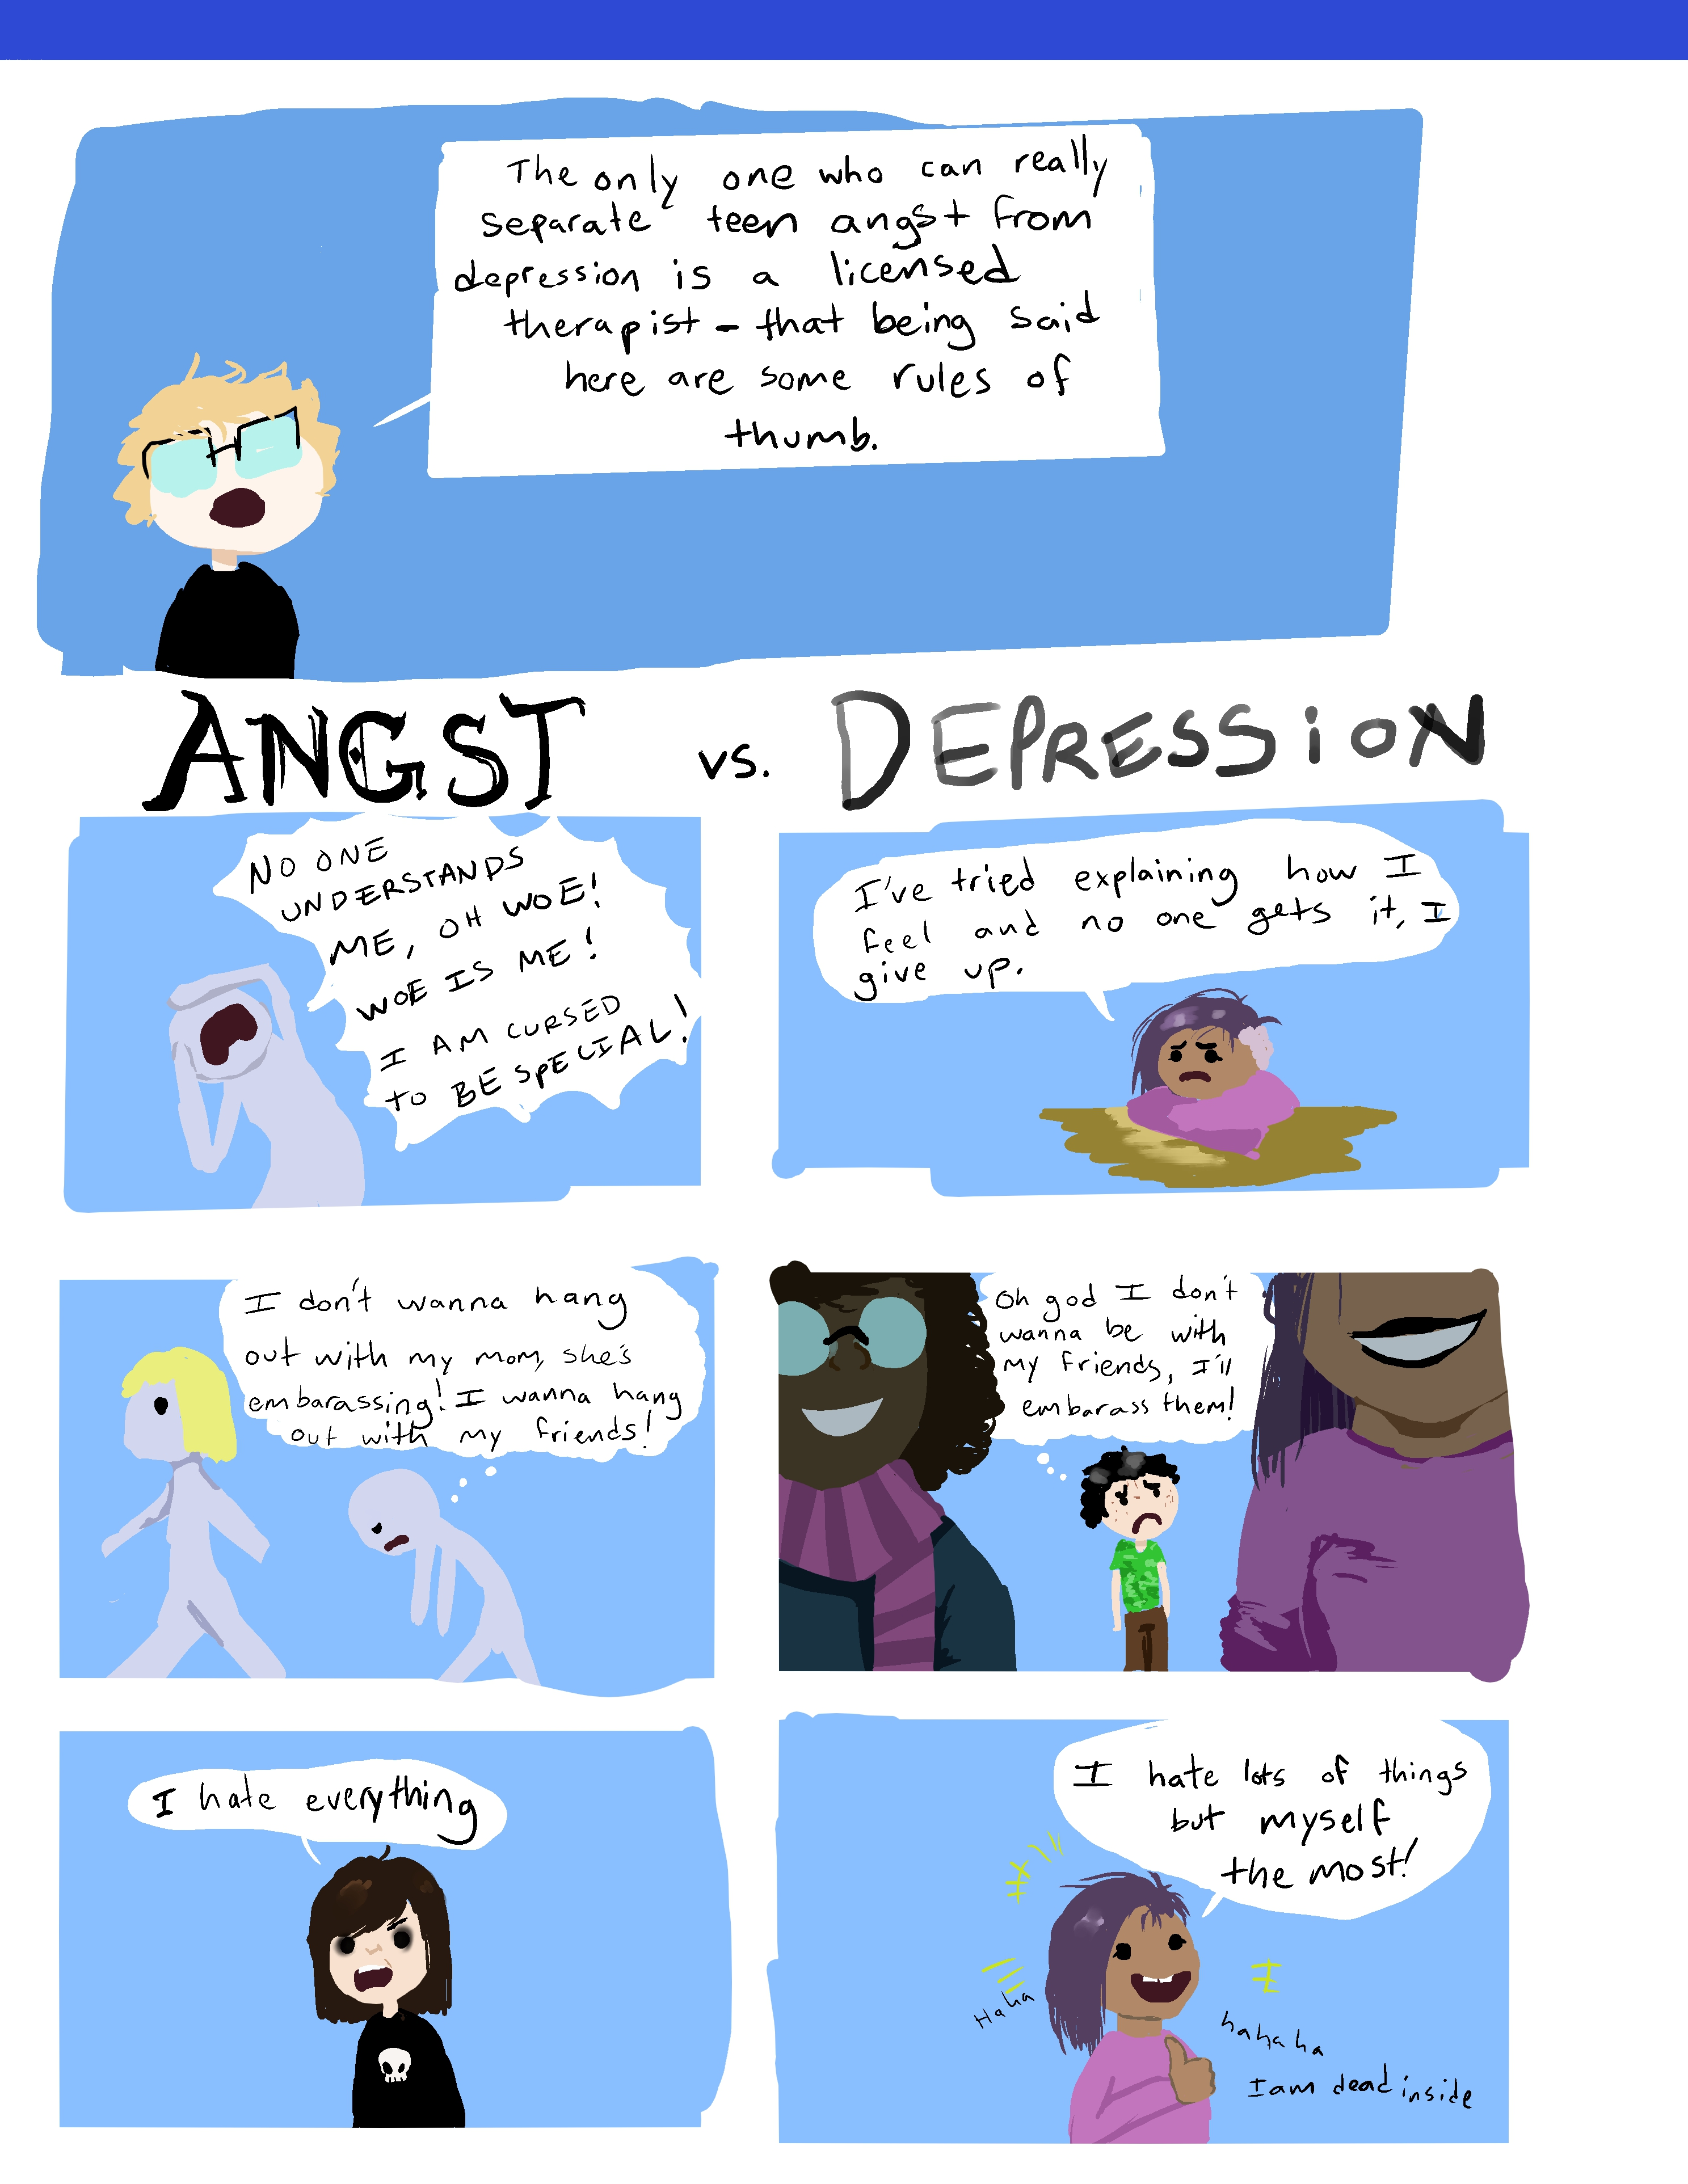 Angst vs. Depression 2: They're back and this time it's confusing